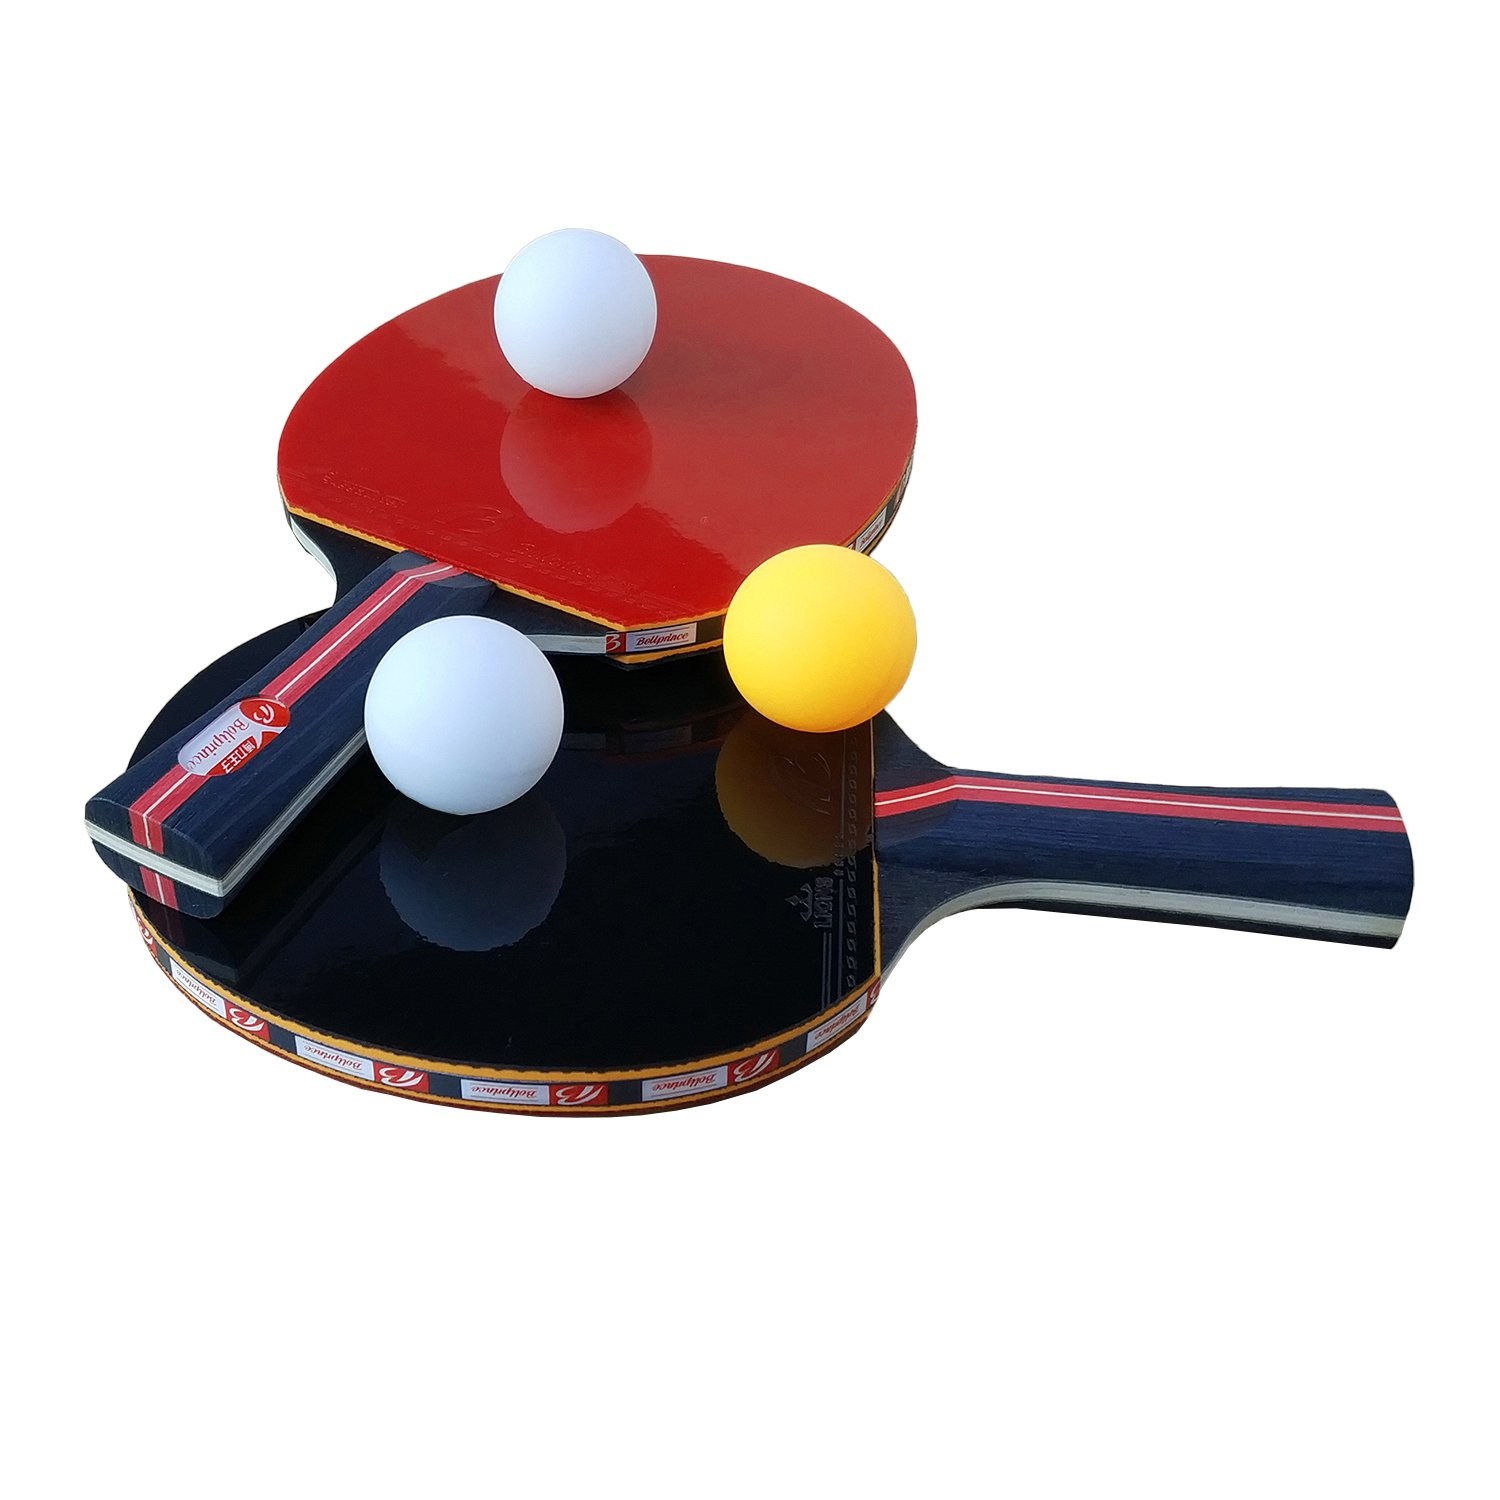 Easy-Room Table Tennis Racket Bat Set, Pingpong Paddle with 2 Bats ...